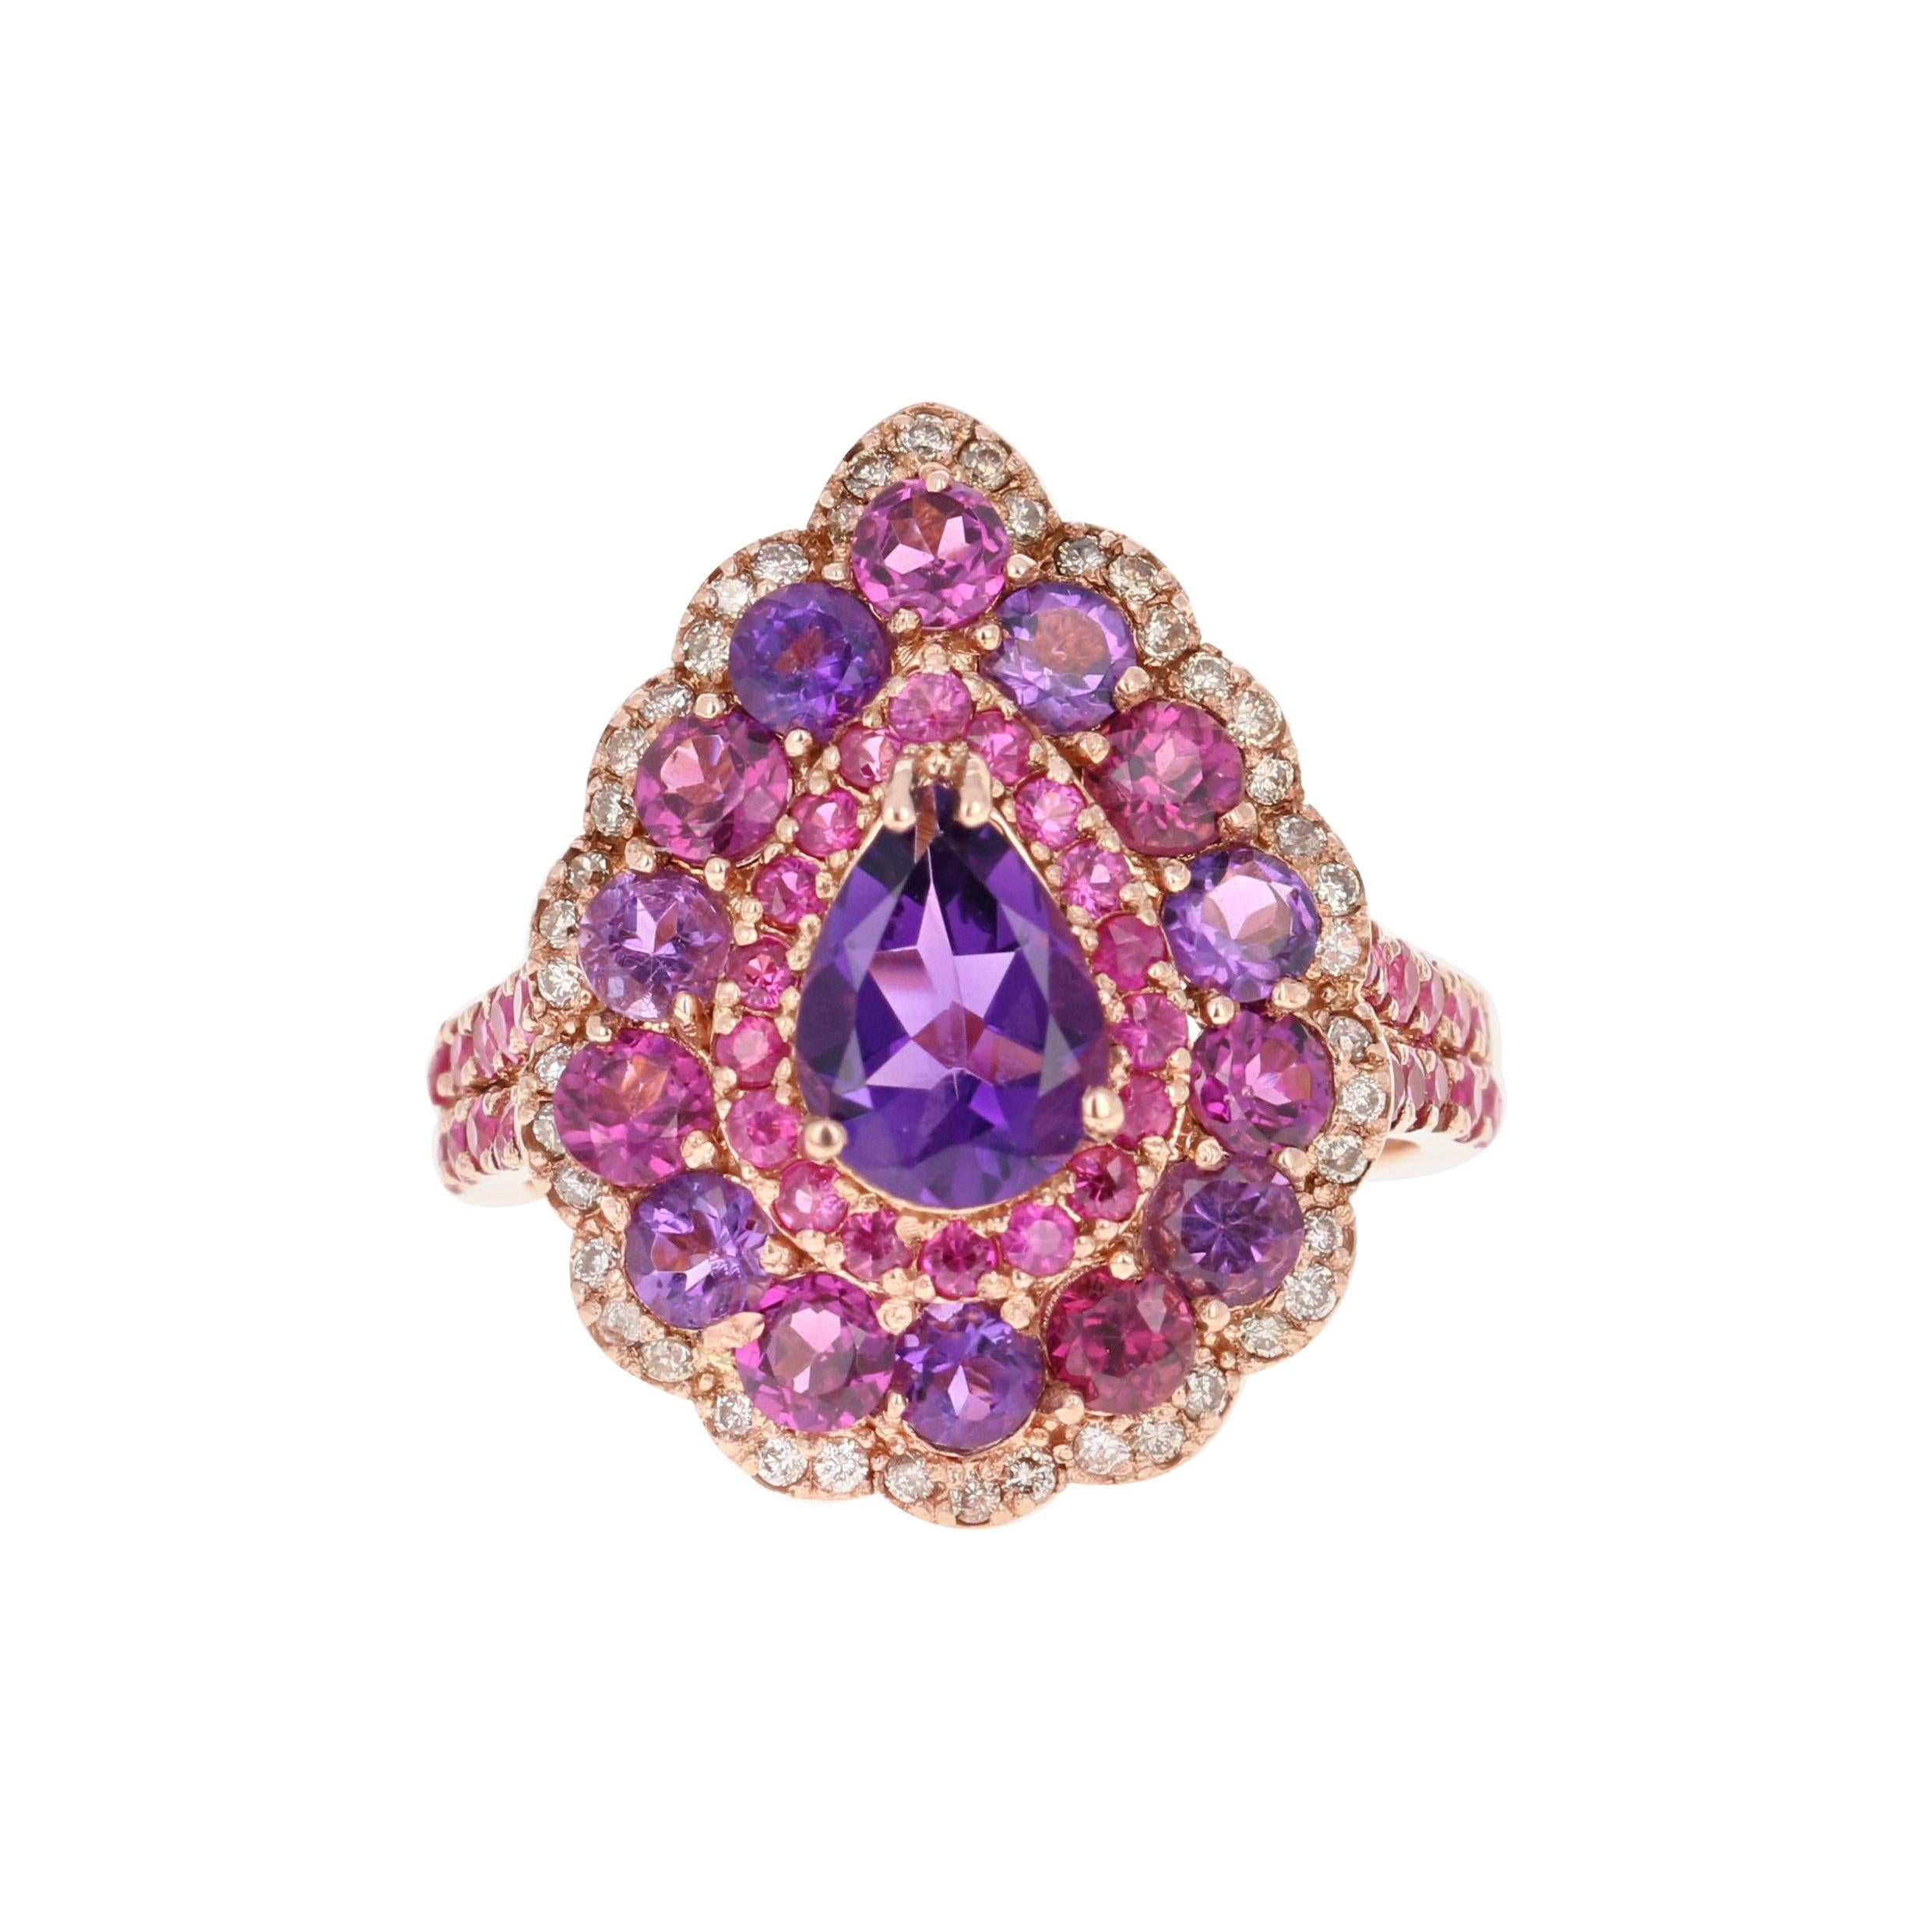 3.57 Carat Amethyst Pink Sapphire Diamond 14 Karat Rose Gold Cocktail Ring